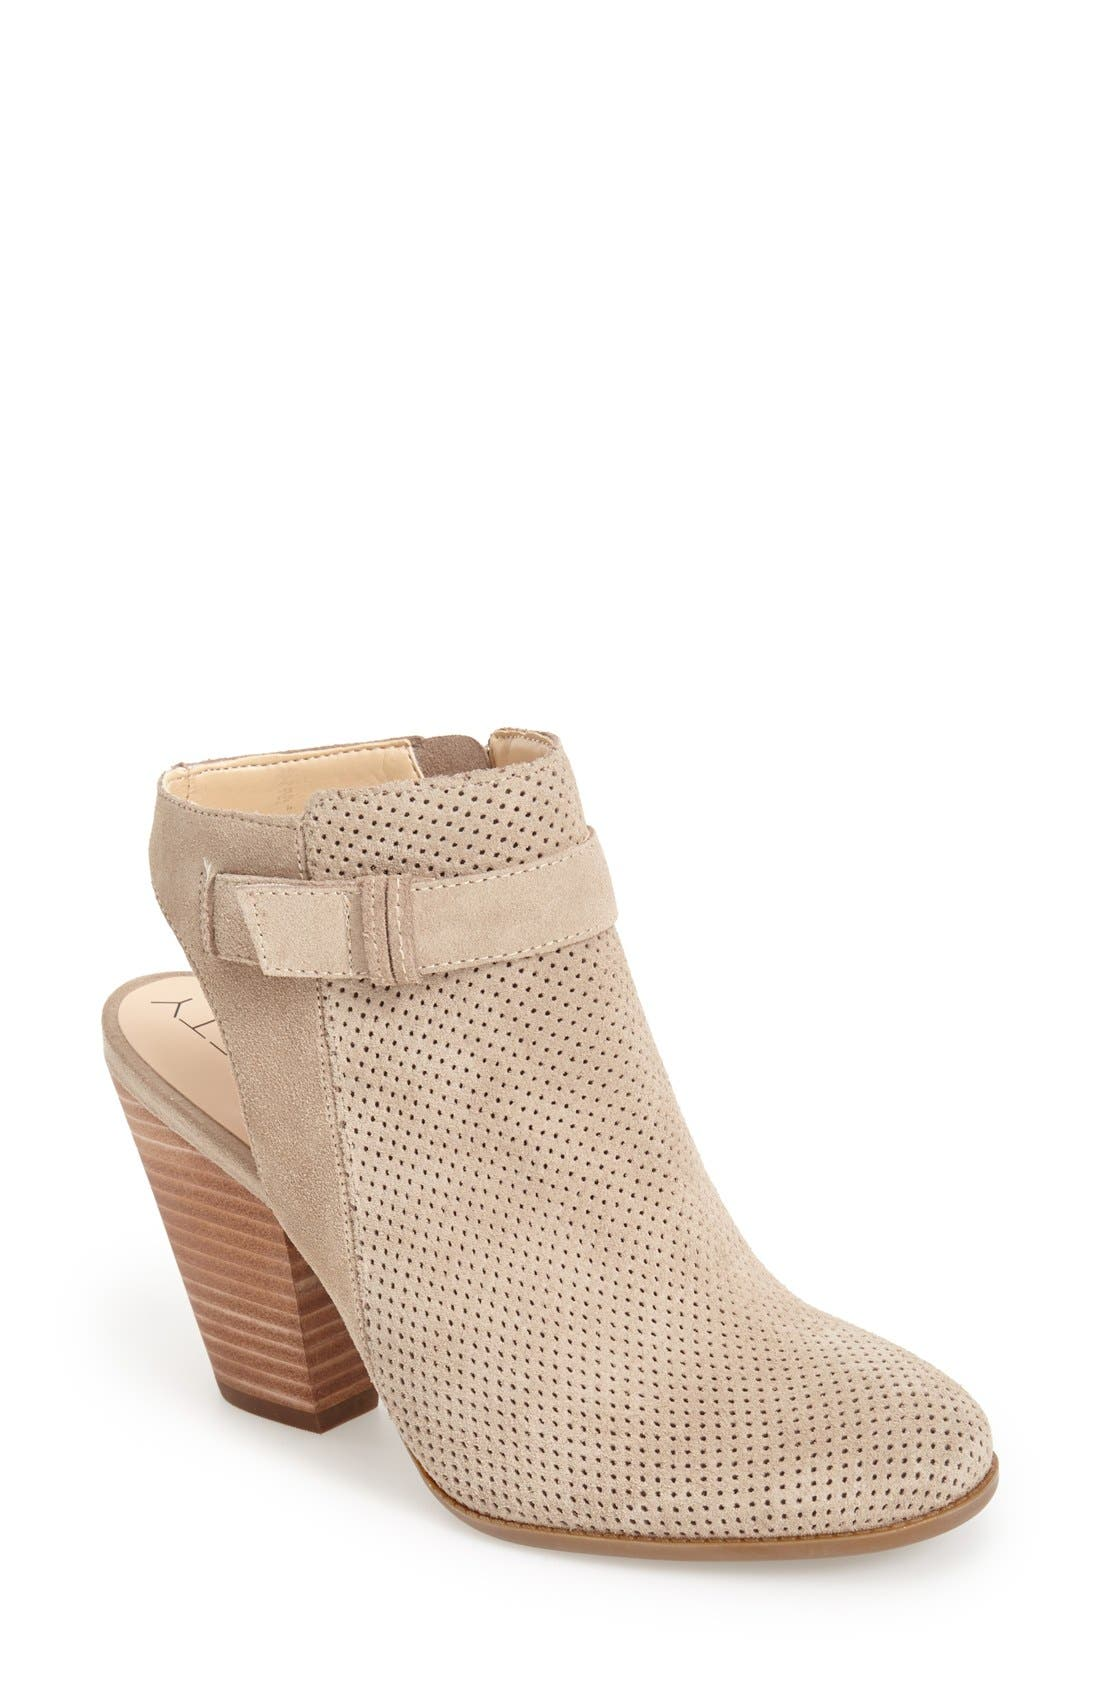 Alternate Image 1 Selected - Sole Society 'Perin' Perforated Suede Bootie (Women)